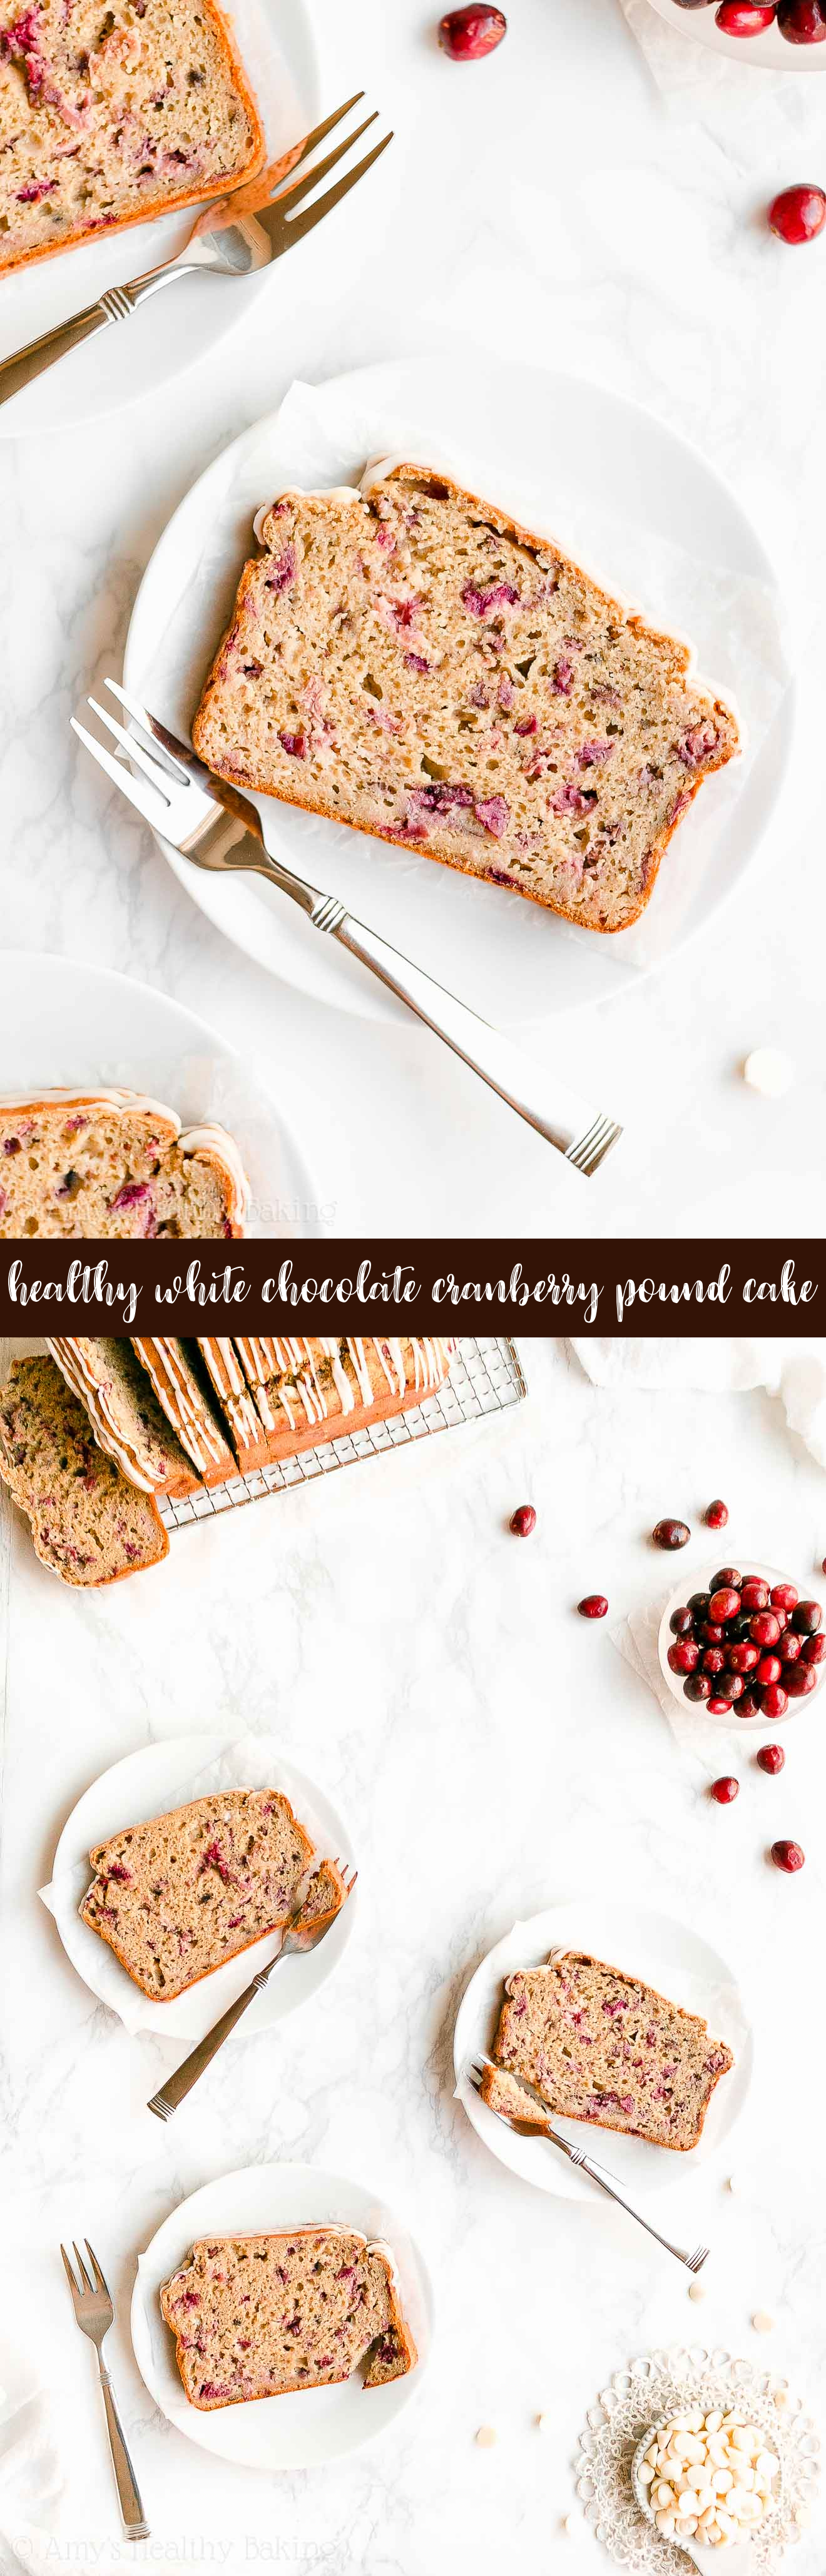 Best Ever Easy Healthy Holiday White Chocolate Fresh Cranberry Pound Cake